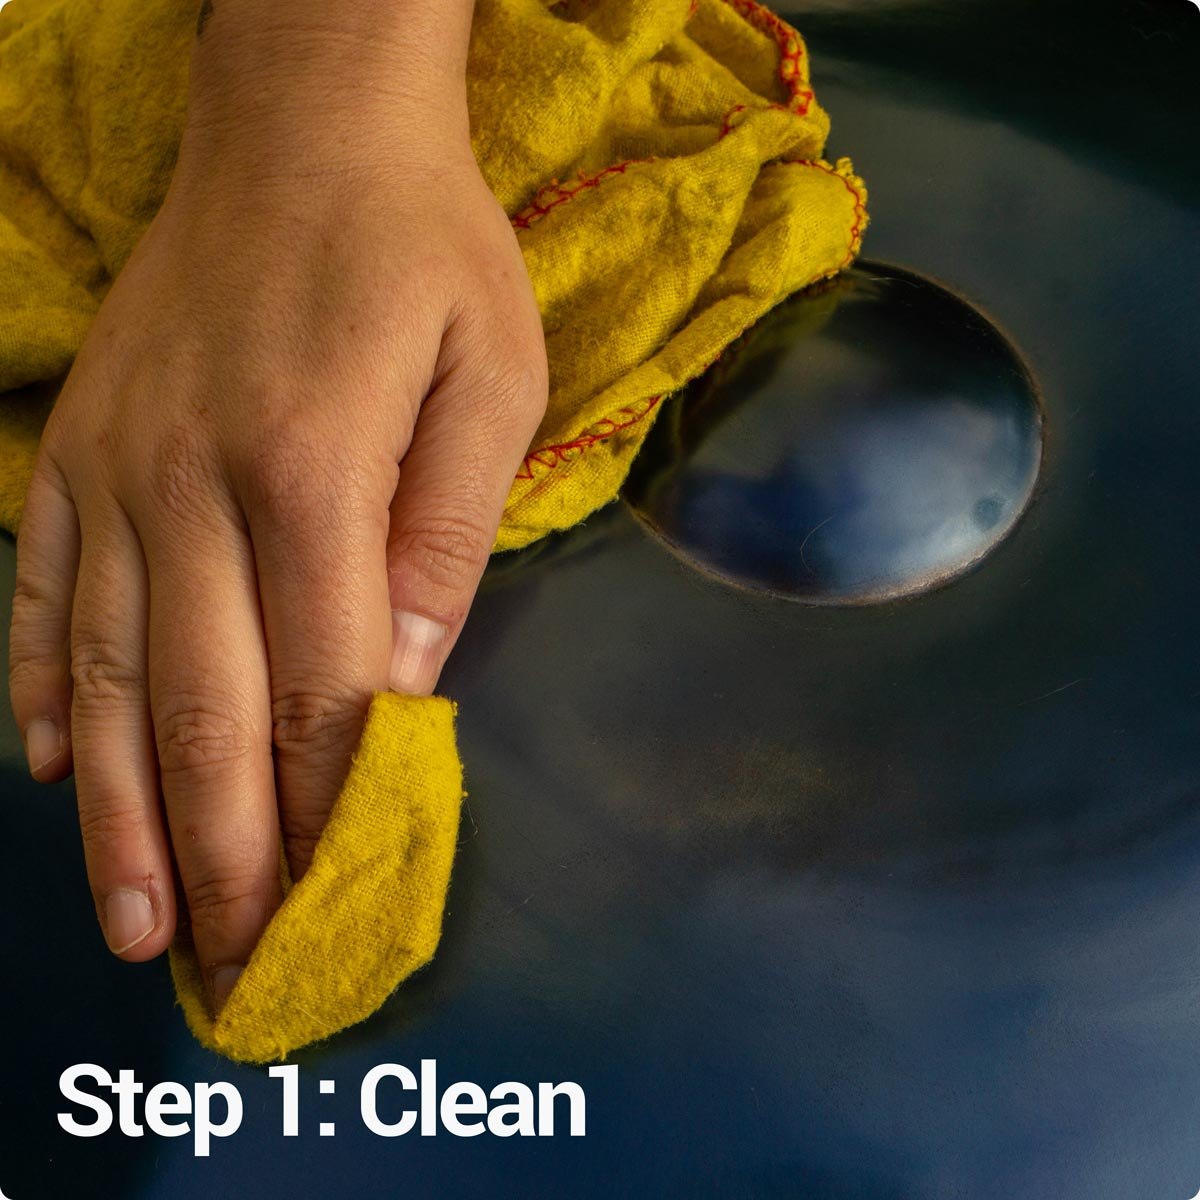 Step 1: Clean your handpan